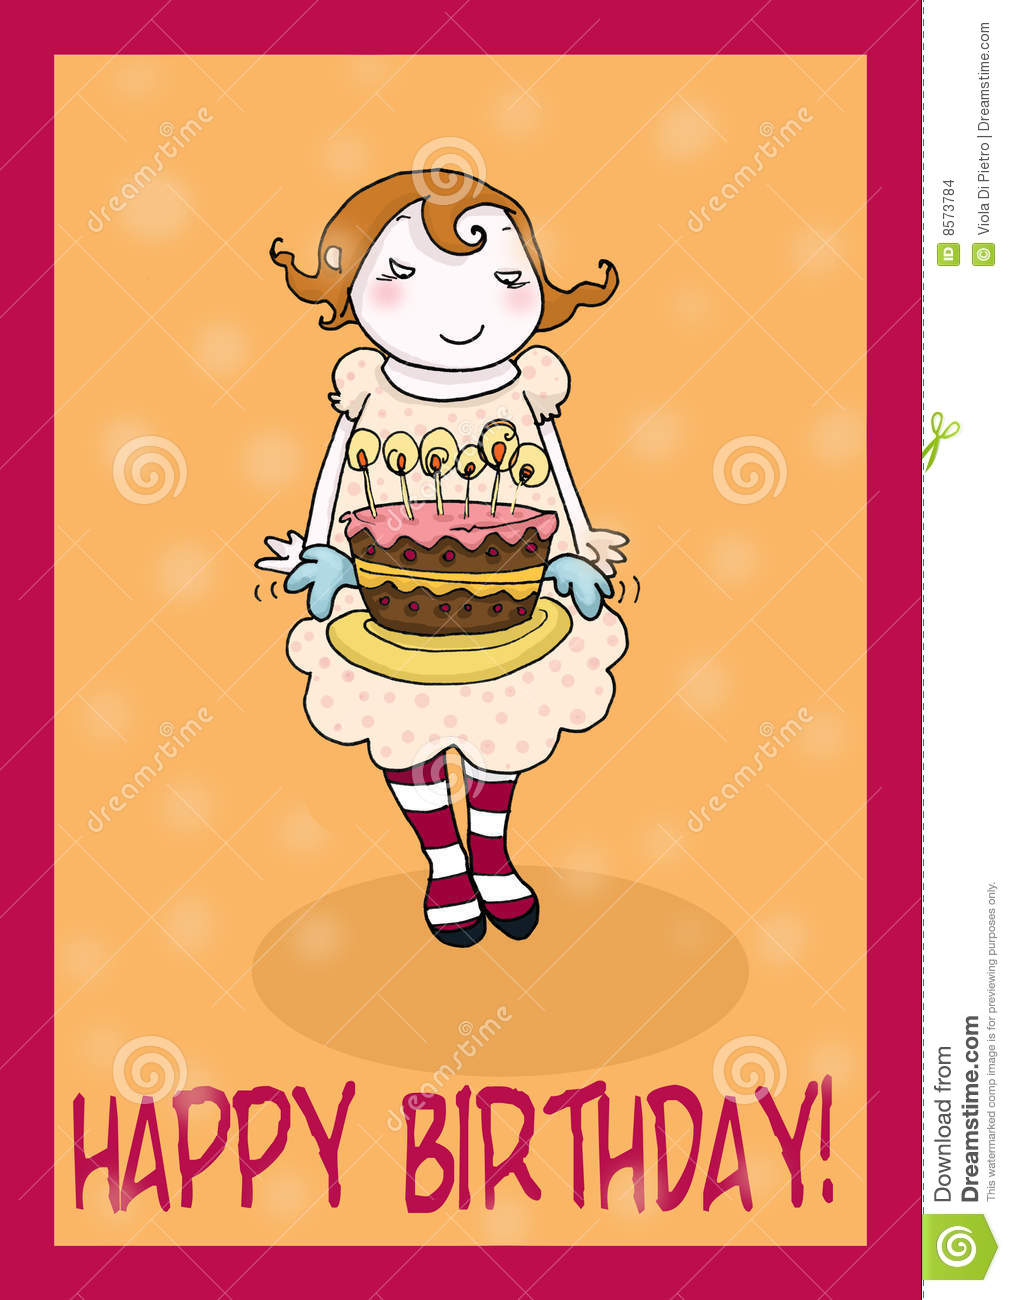 Happy Birthday Cake Greetings Card Stock Illustration Illustration